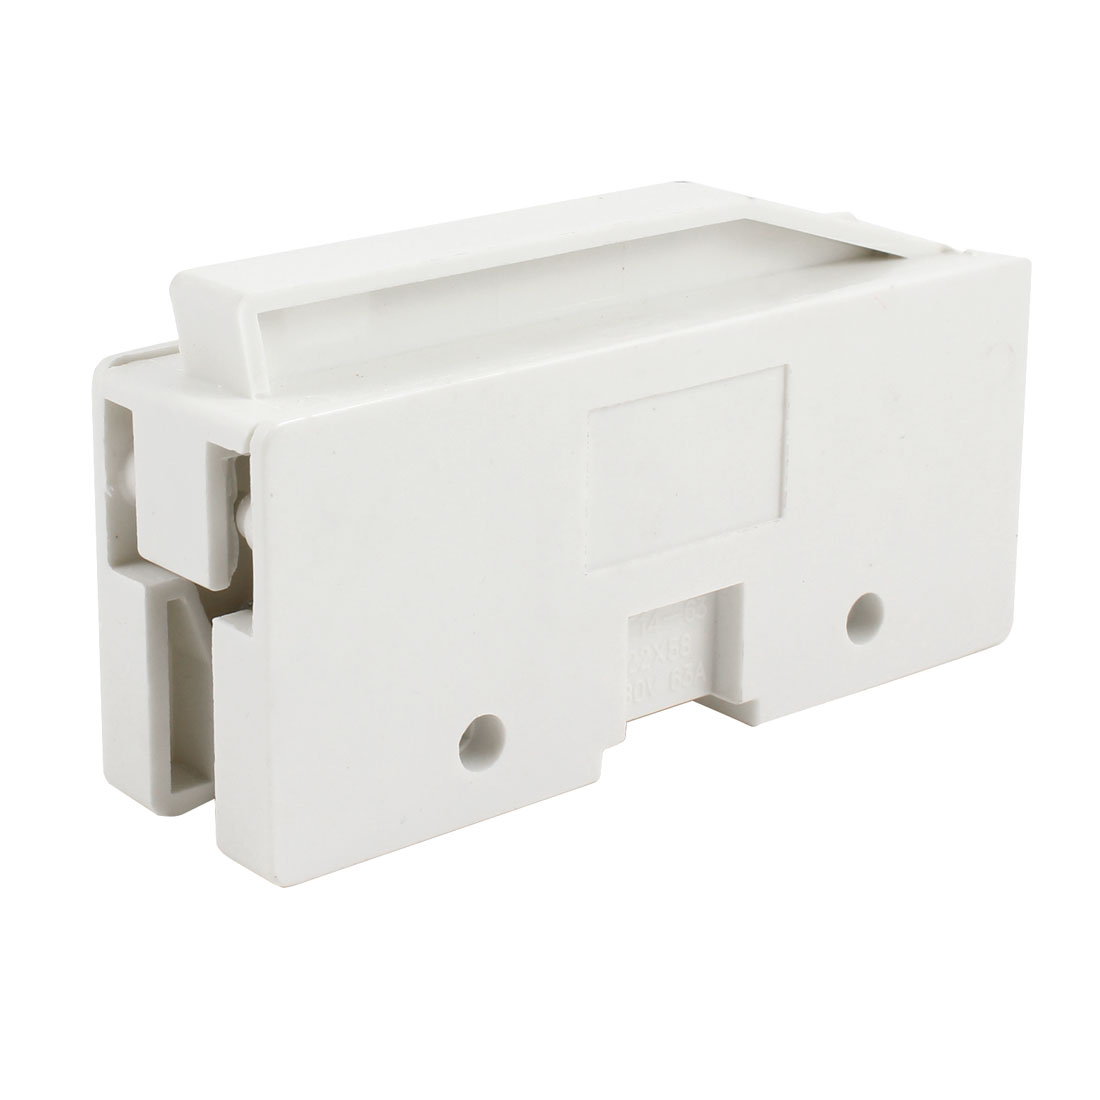 RT14-63A Single Pole 22x58mm Cylindrical Fuse Holder